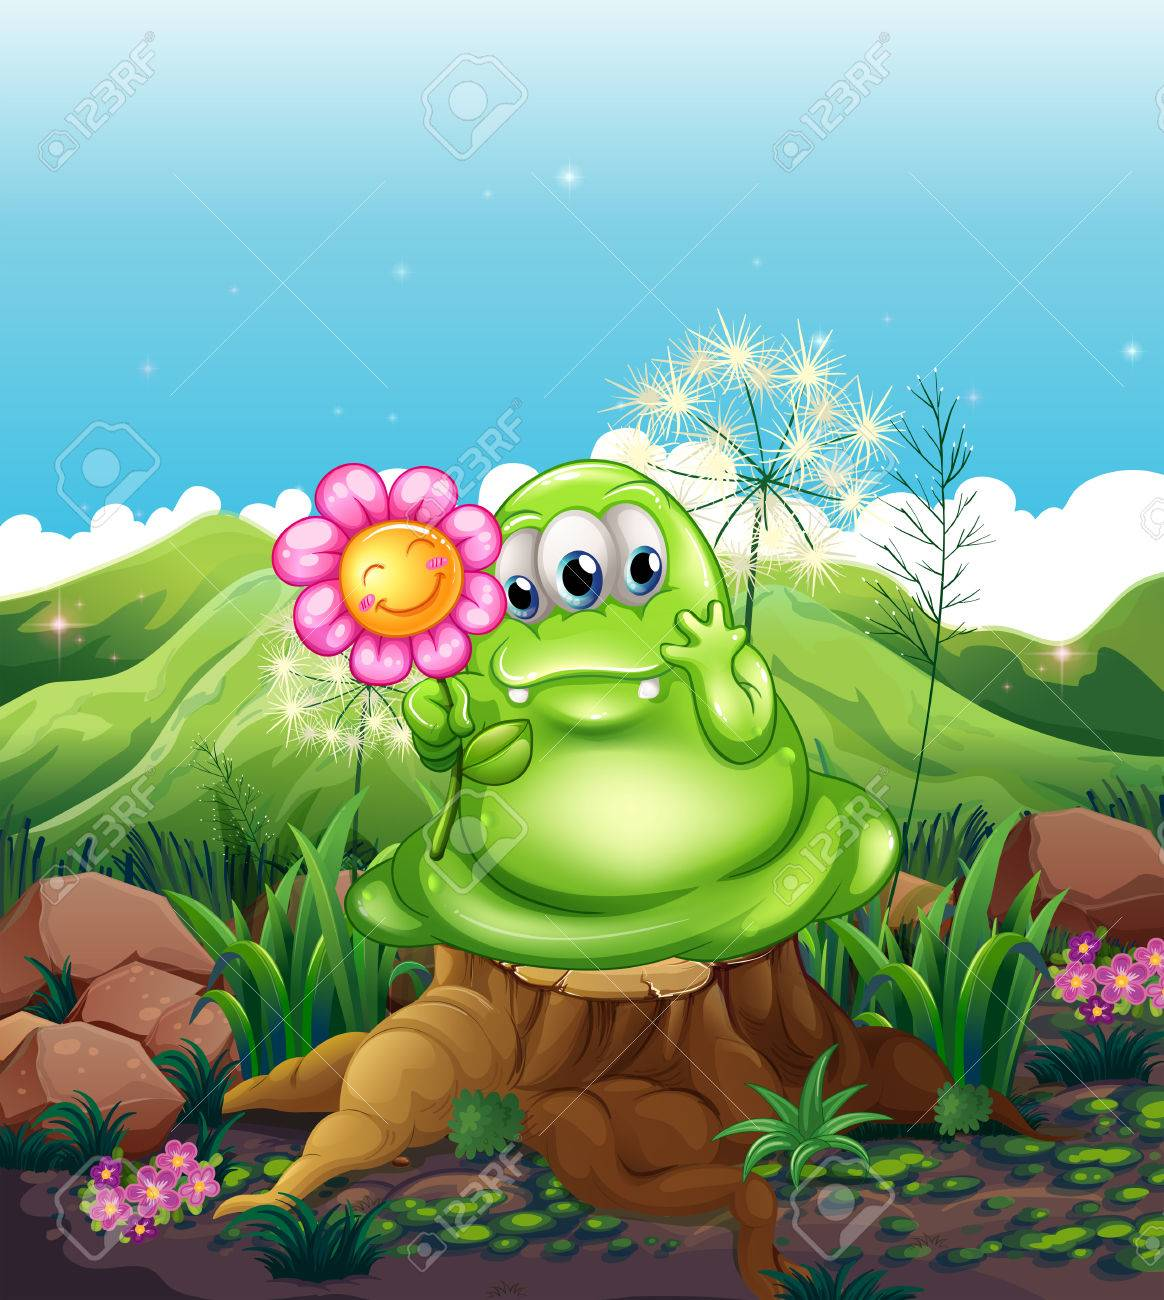 Illustration of a monster with a flower standing above the stump Stock Vector - 22405268